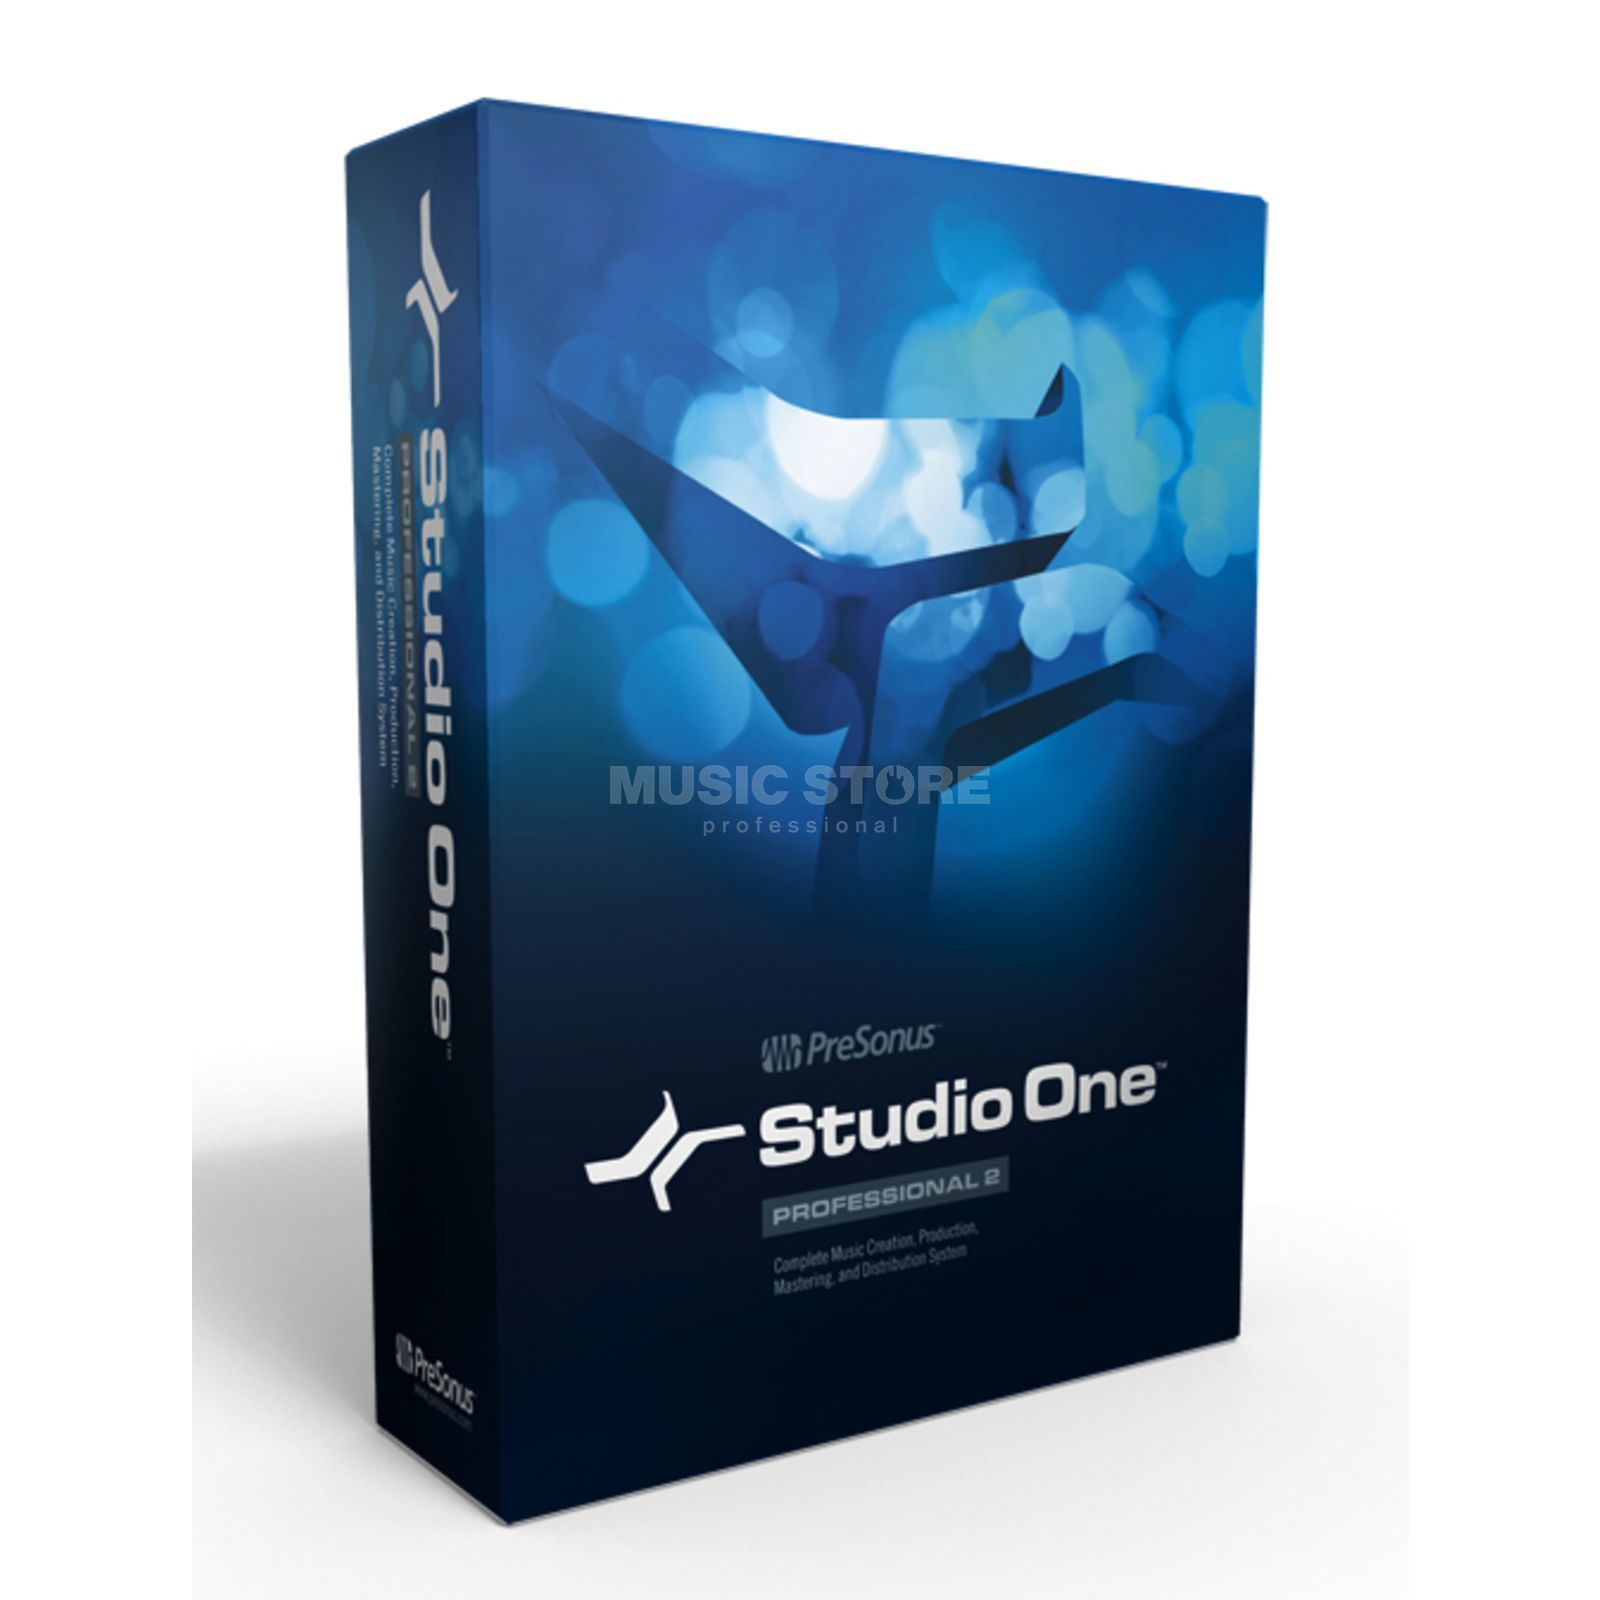 Presonus Studio One Artist To Professional V2.0 Upgrade Produktbillede